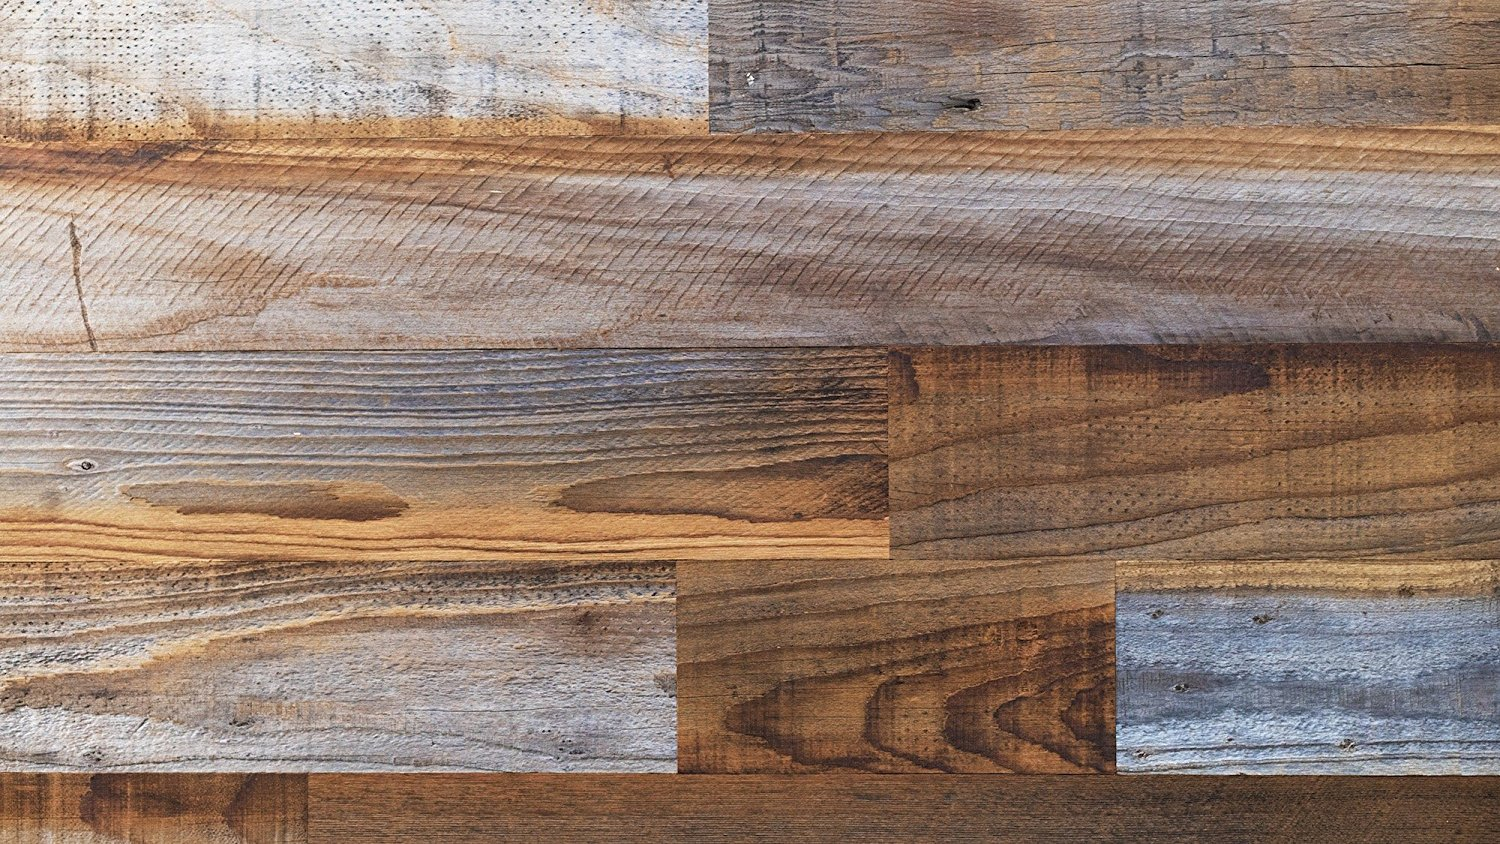 Stikwood Reclaimed Pine Wall Decor, Sierra Silver/Dark Brown